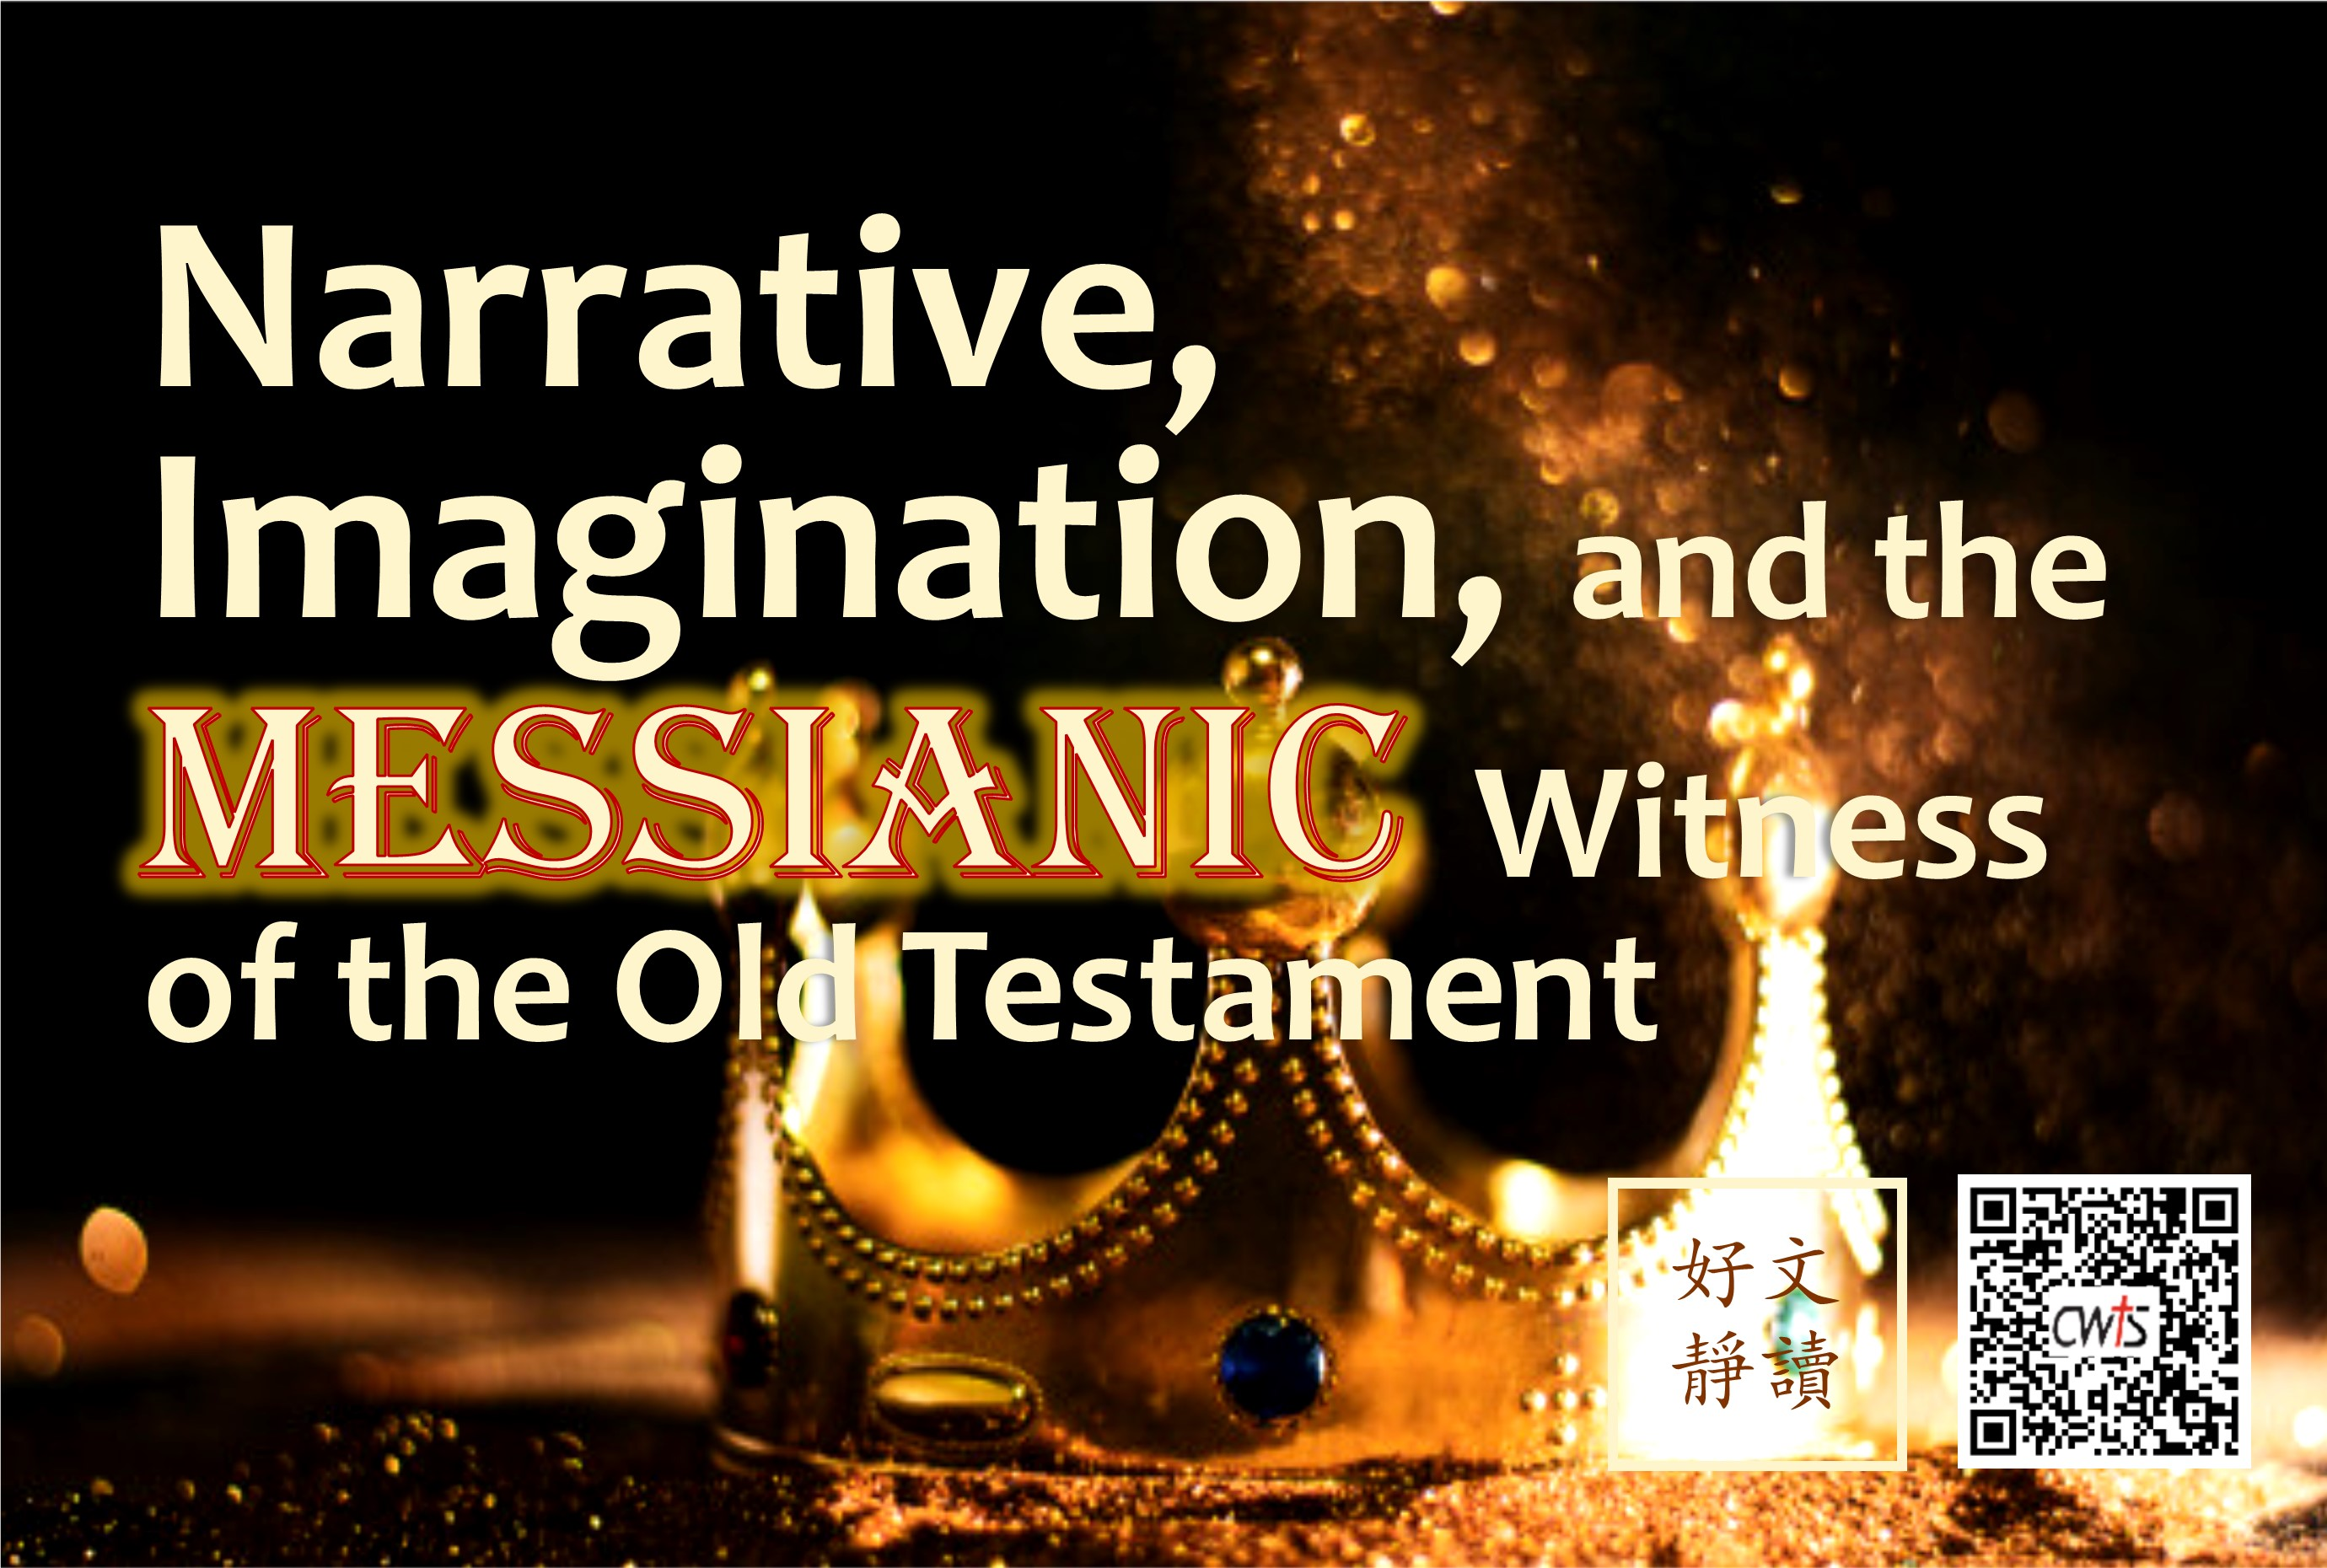 Narrative, Imagination, and the Messianic Witness of the Old Testament/